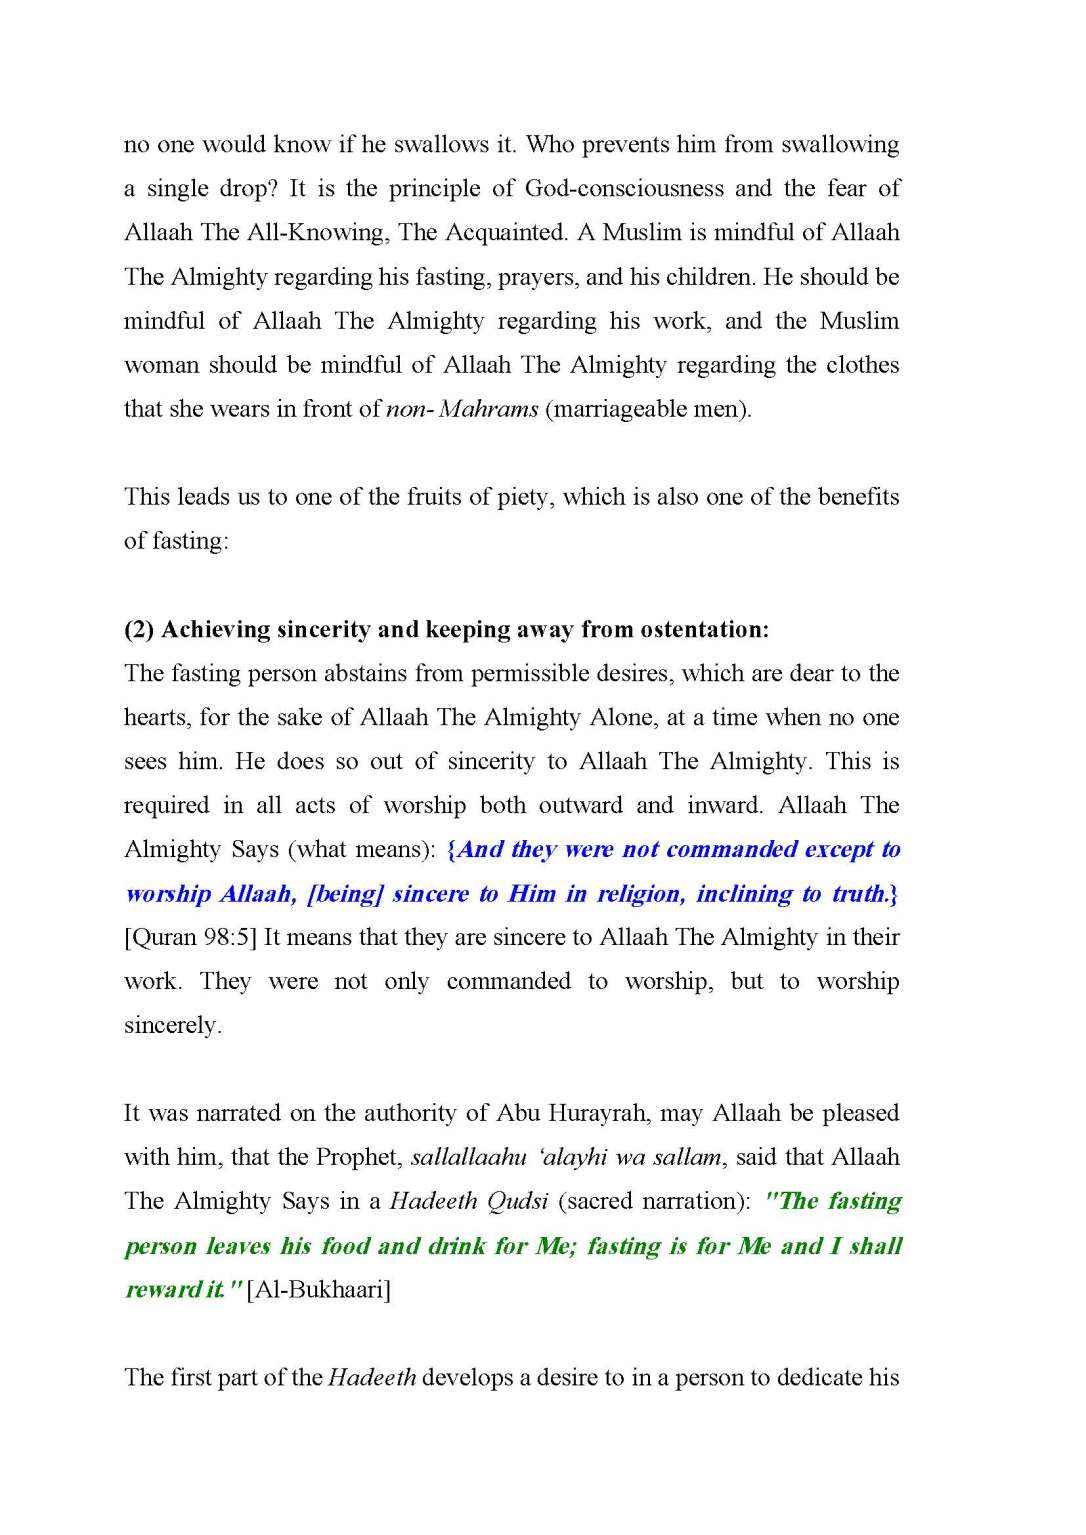 Benefits_and_Secrets_of_Fasting_Page_08